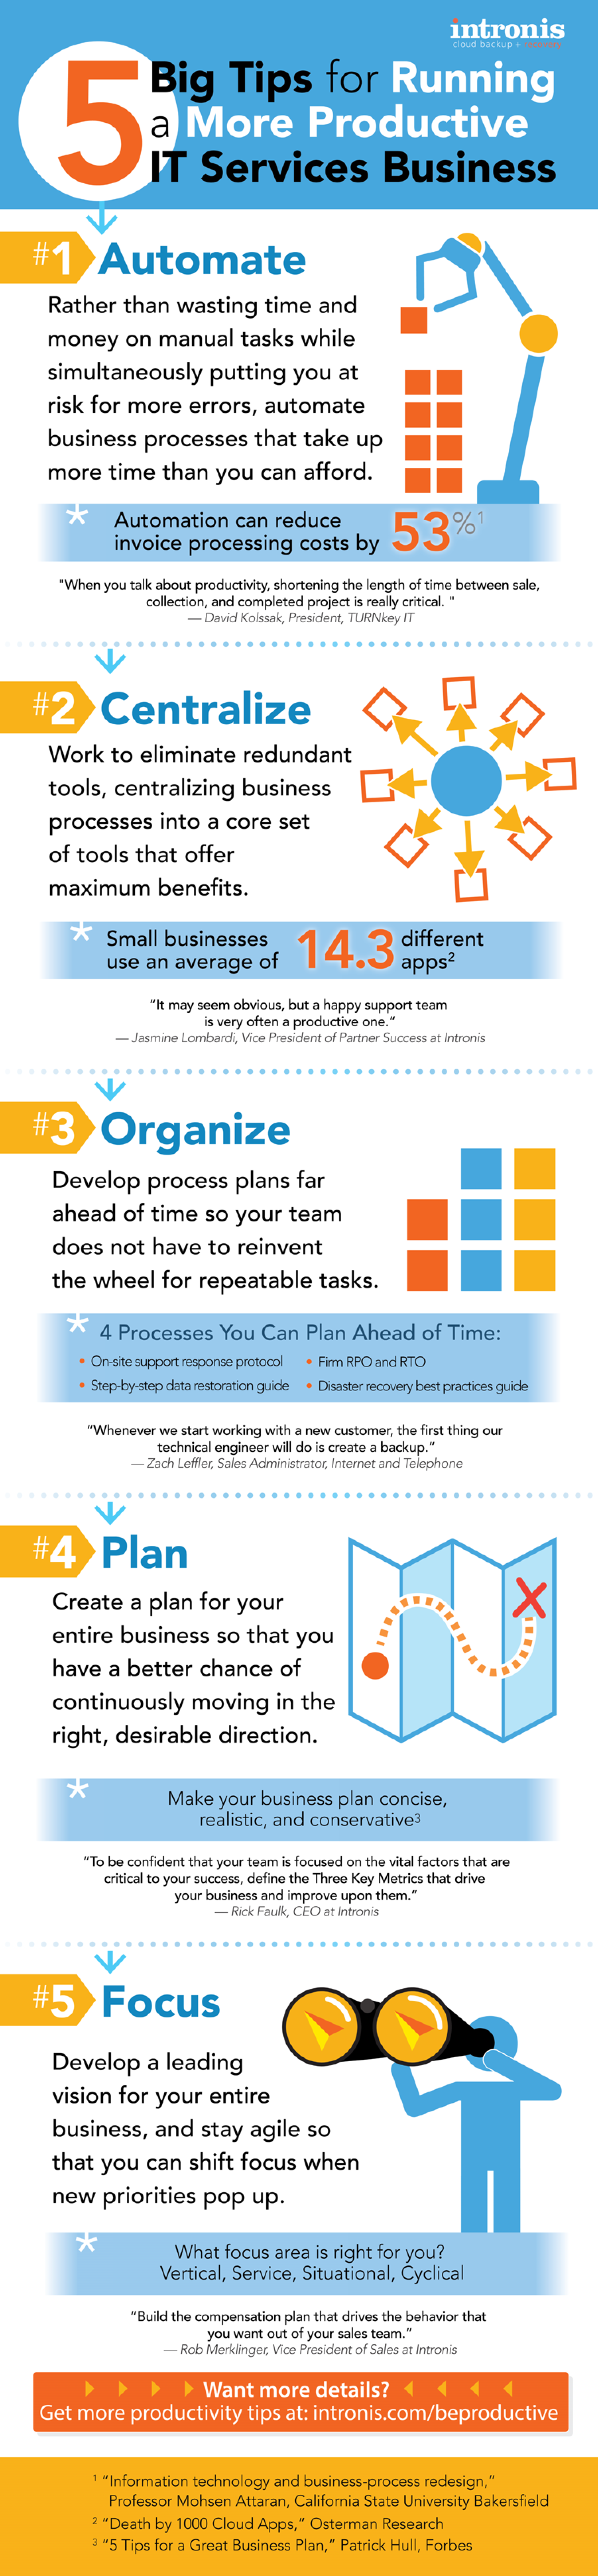 5 Big Tips to Run a More Productive IT Services Business ...